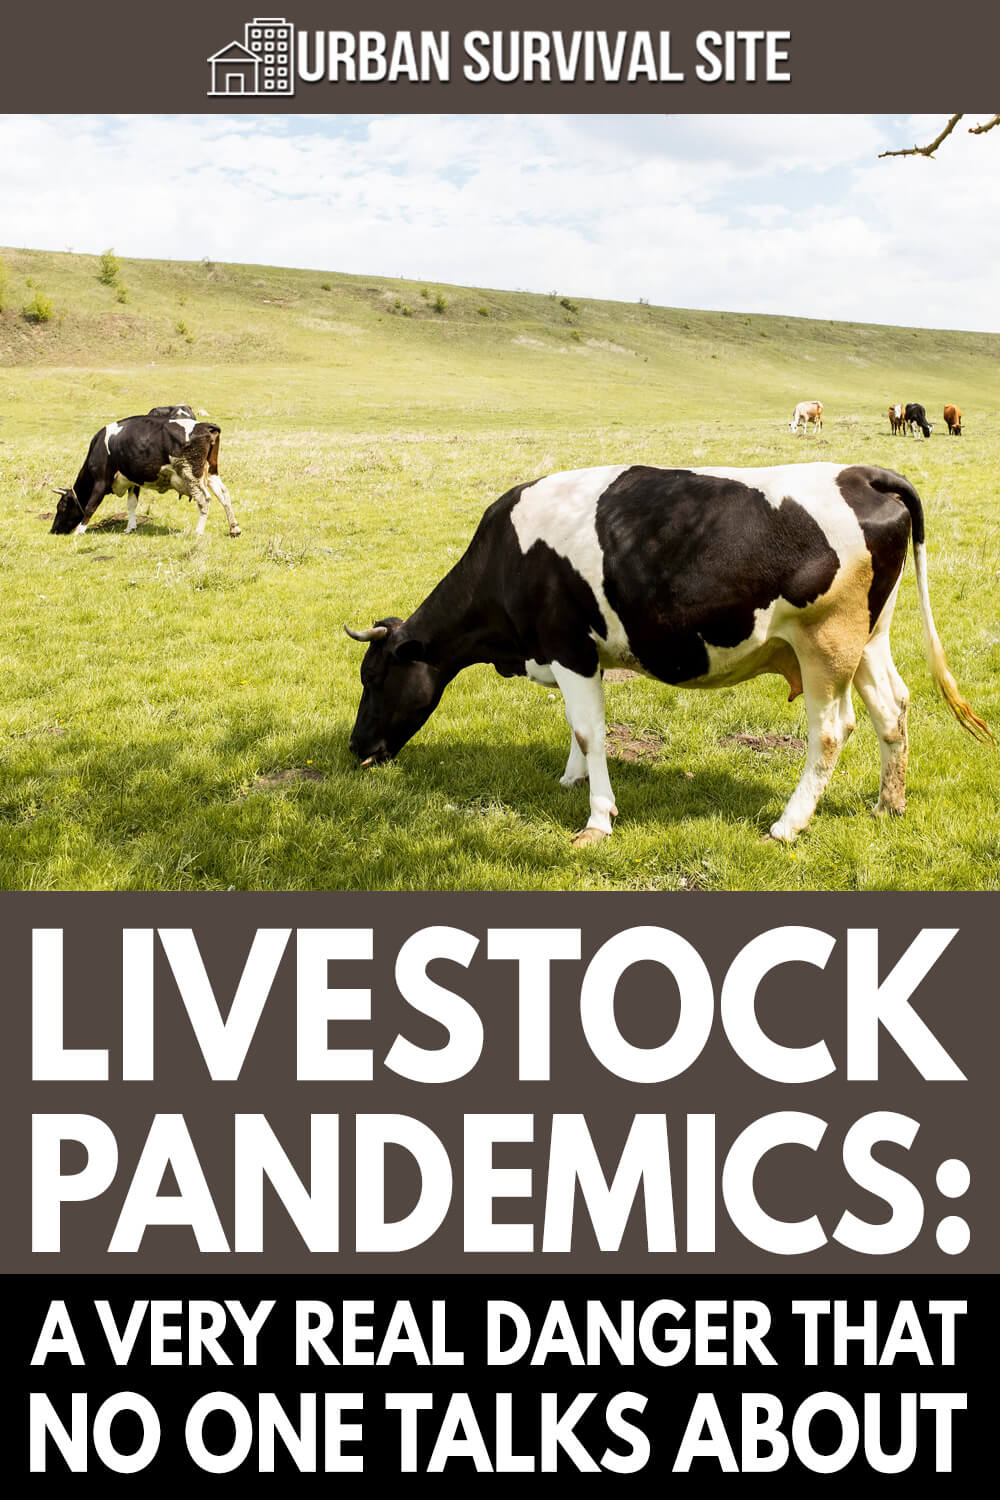 Livestock Pandemics: A Very Real Danger That No One Talks About